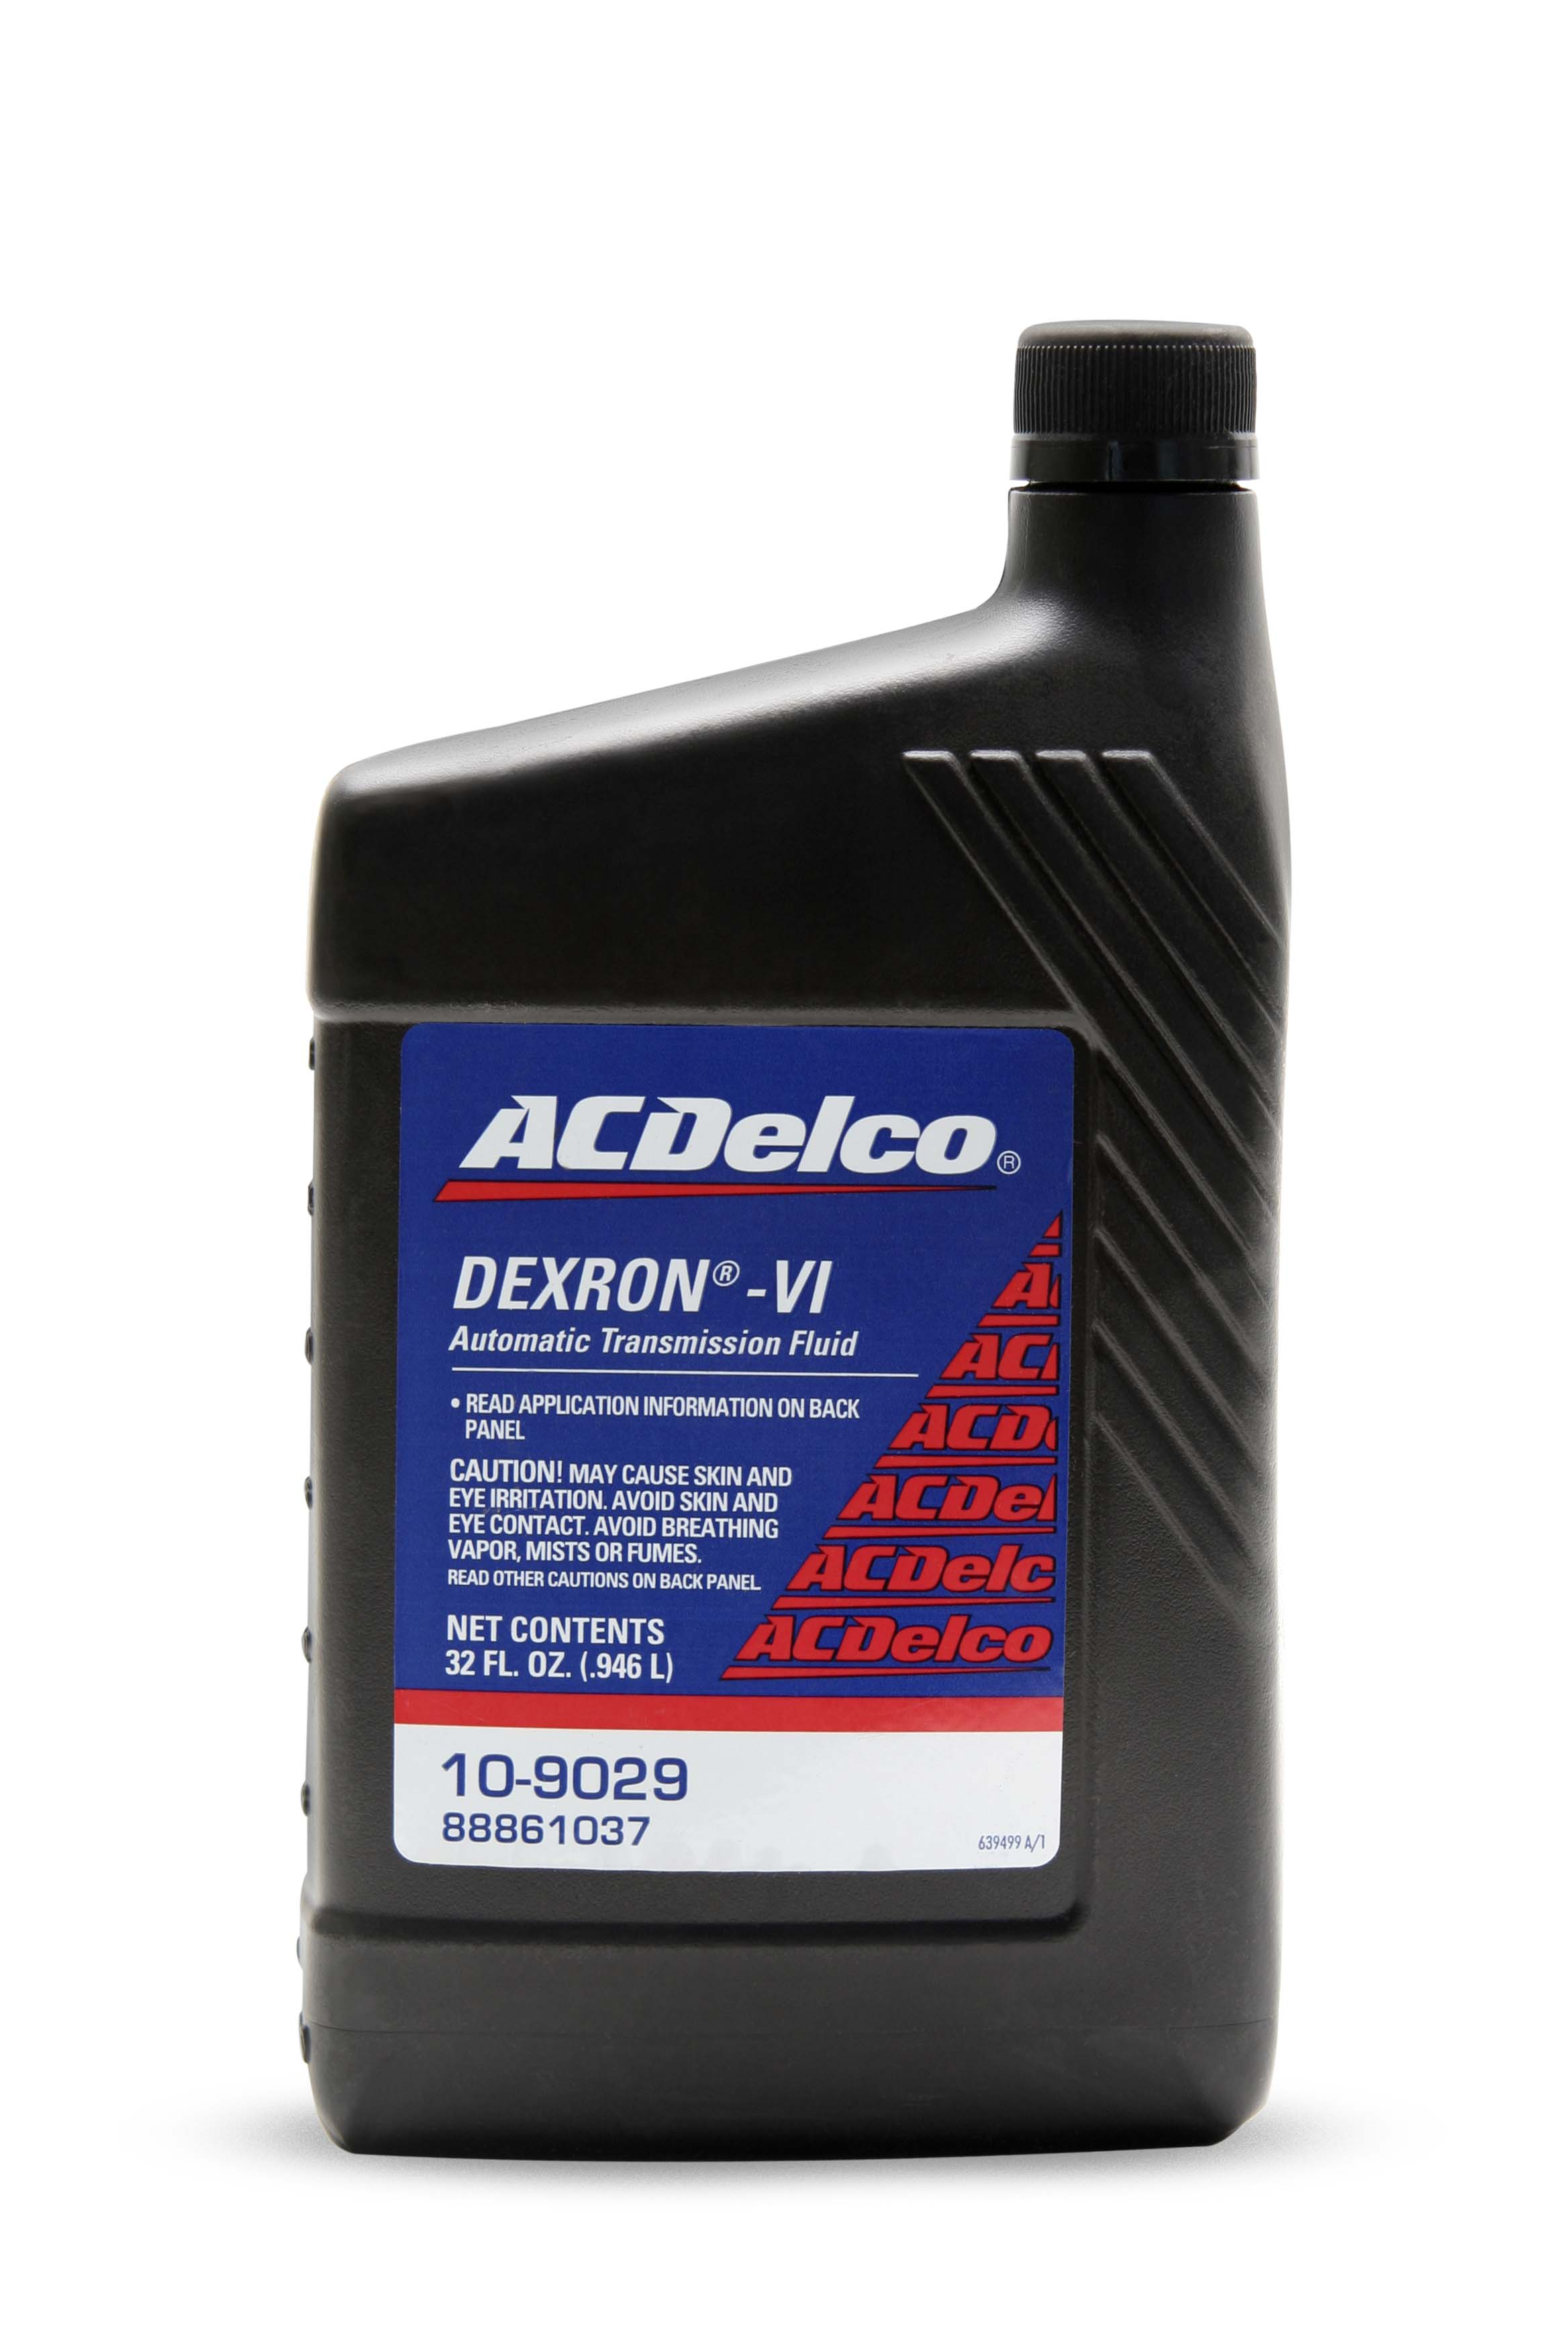 acdelco canada dexron vi transmission fluid. Black Bedroom Furniture Sets. Home Design Ideas